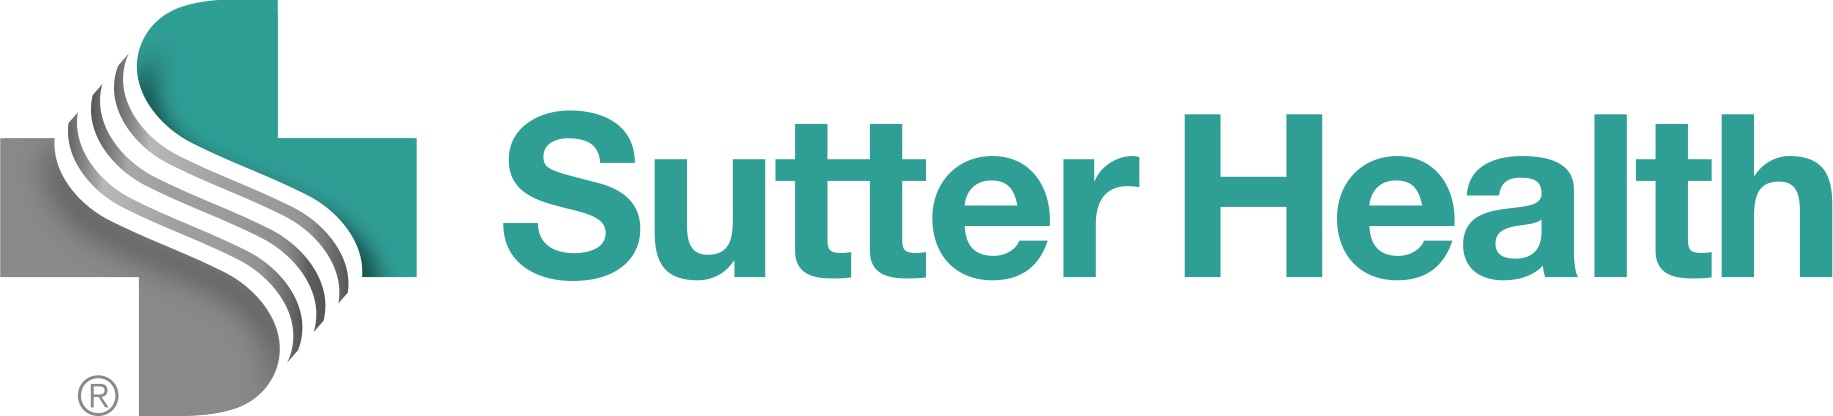 Sutter-Health-Color-Logo.jpg